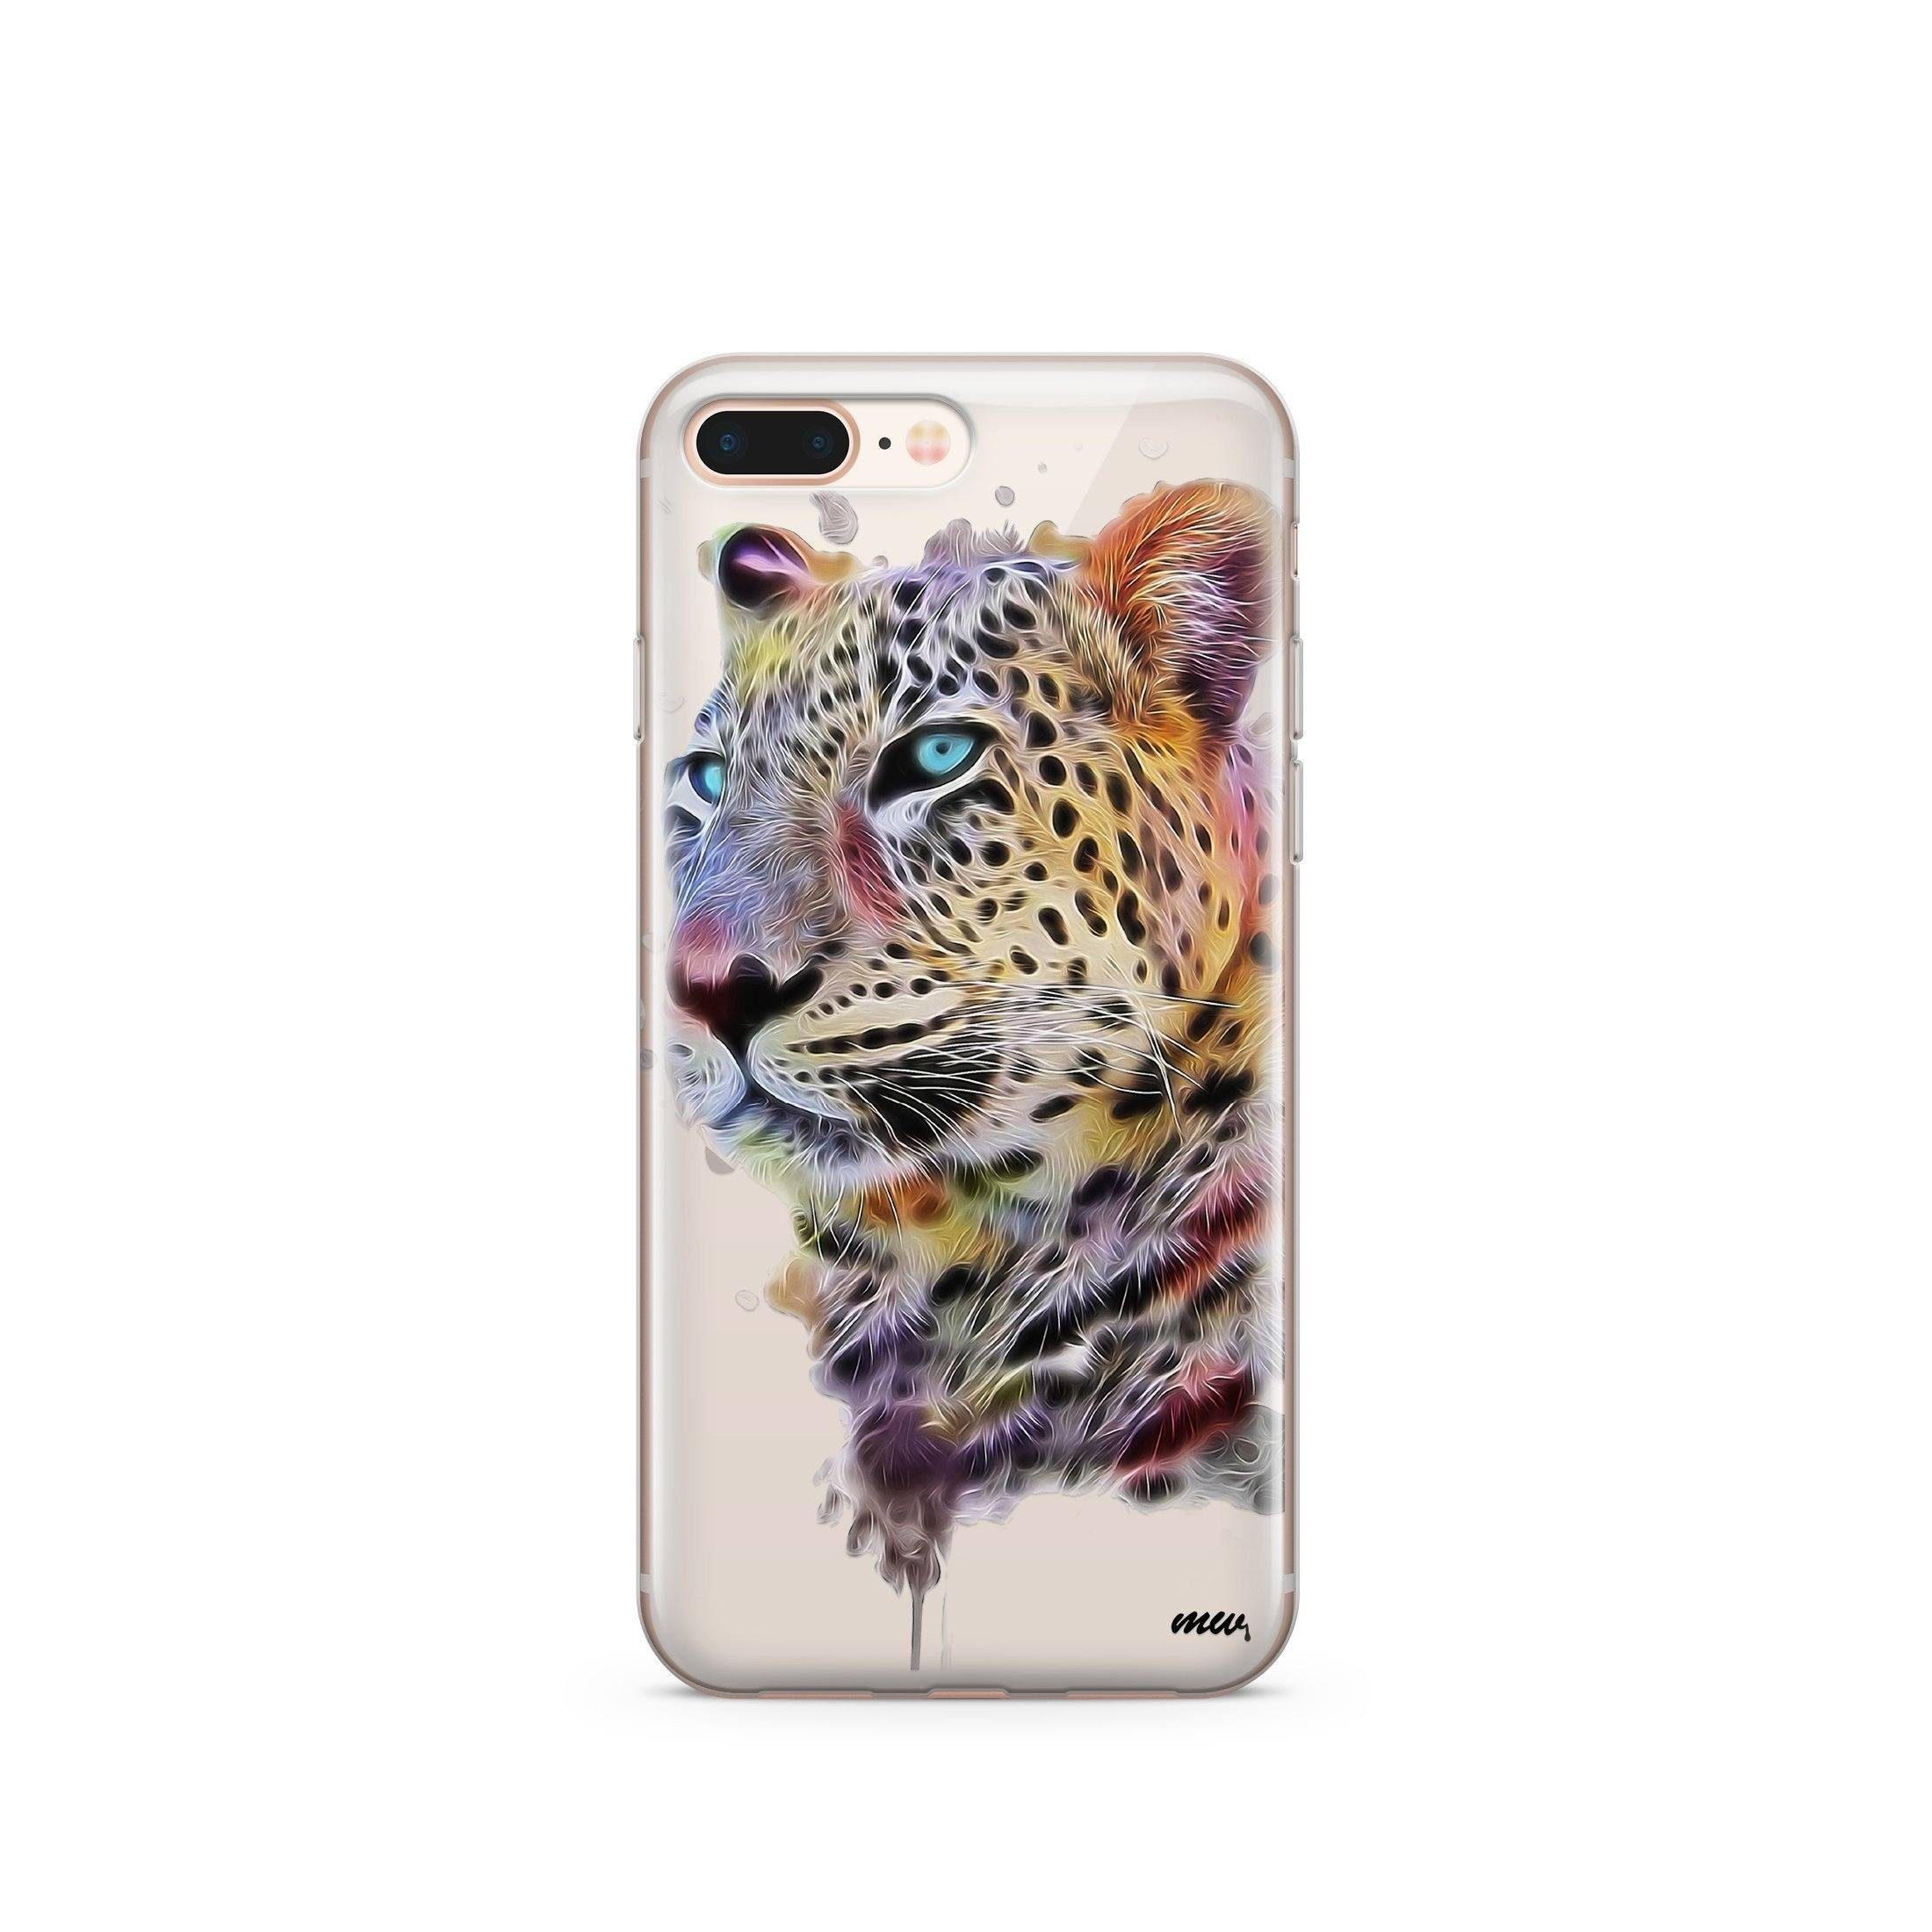 Dripping Leopard - Clear TPU Case Cover - Trendsetterco